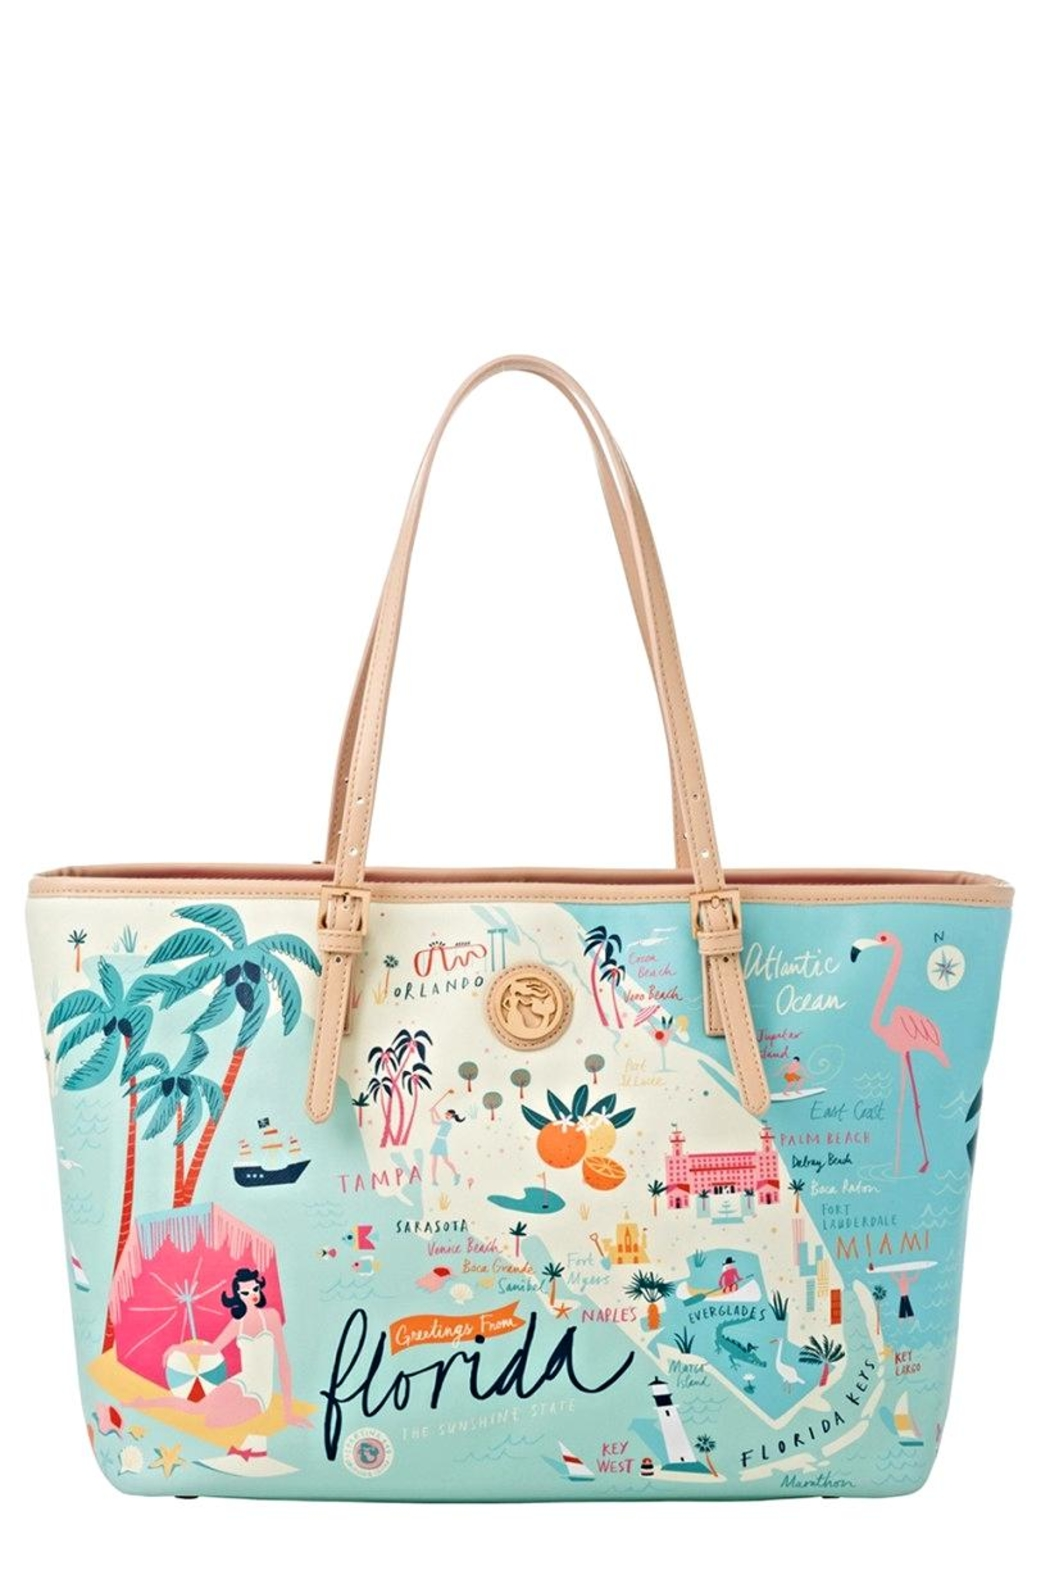 Delray Beach Florida Map.Spartina Florida Map Tote From Palm Beach By Picnic Fashion Shoptiques